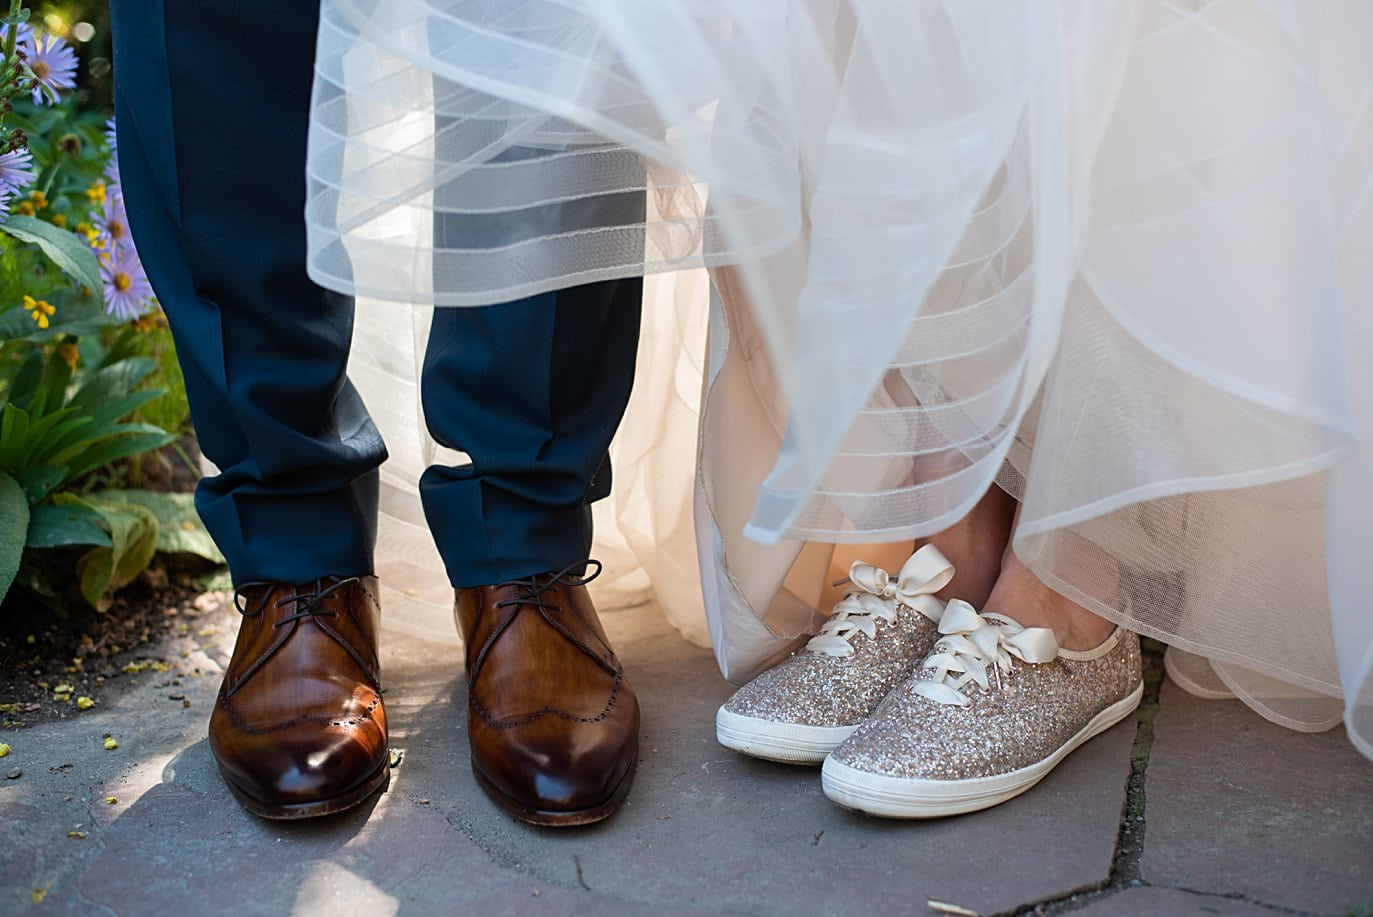 stylish brown wedding shoes and sparkly keds at Denver Botanic Gardens microwedding by Boulder wedding photographer Jennie Crate